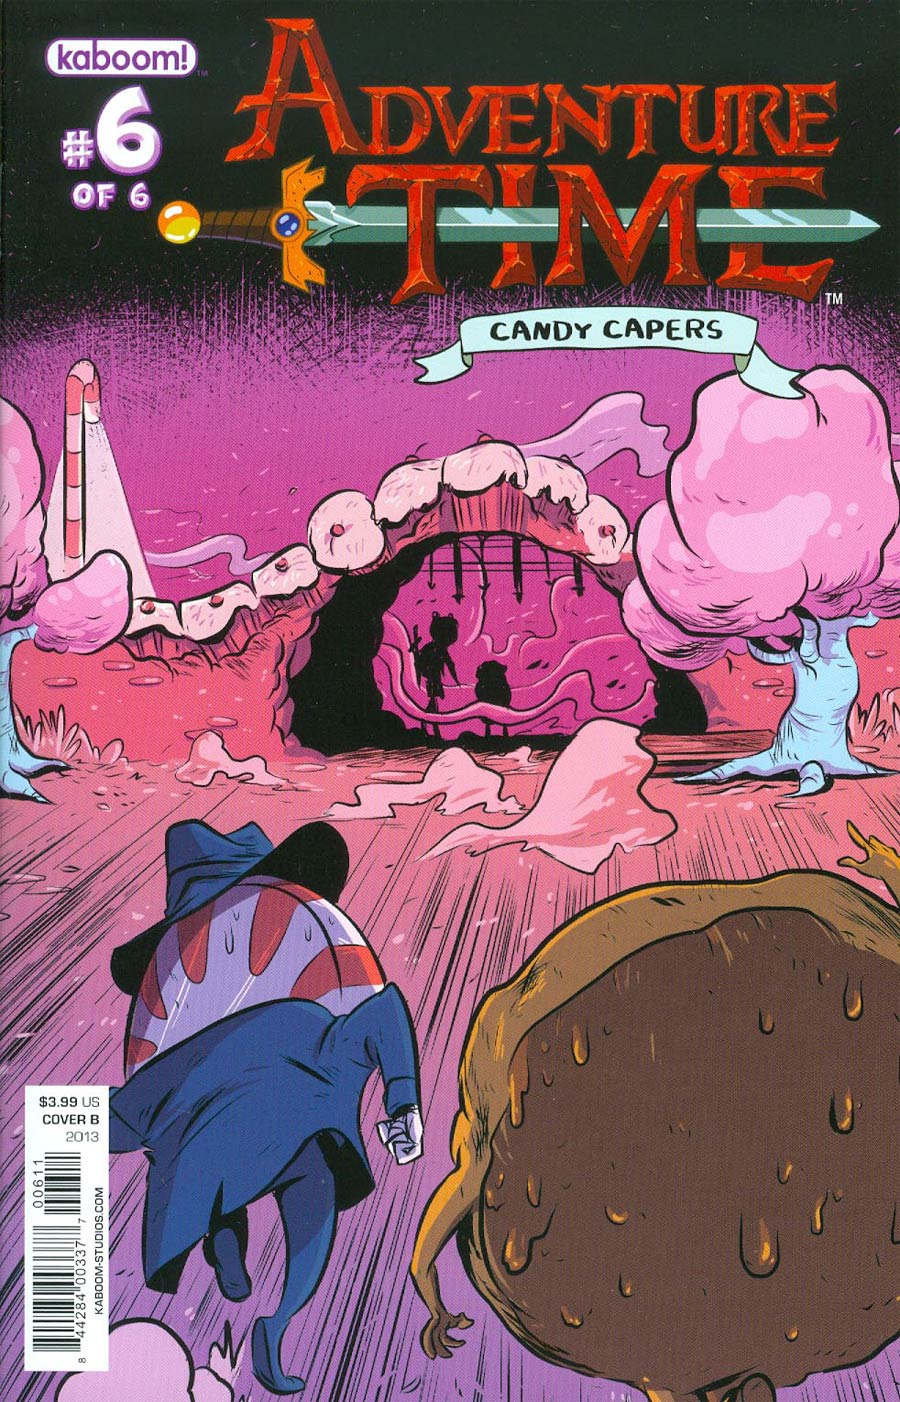 Adventure Time Candy Capers #6 Cover B Regular Wook Jin Clark Cover